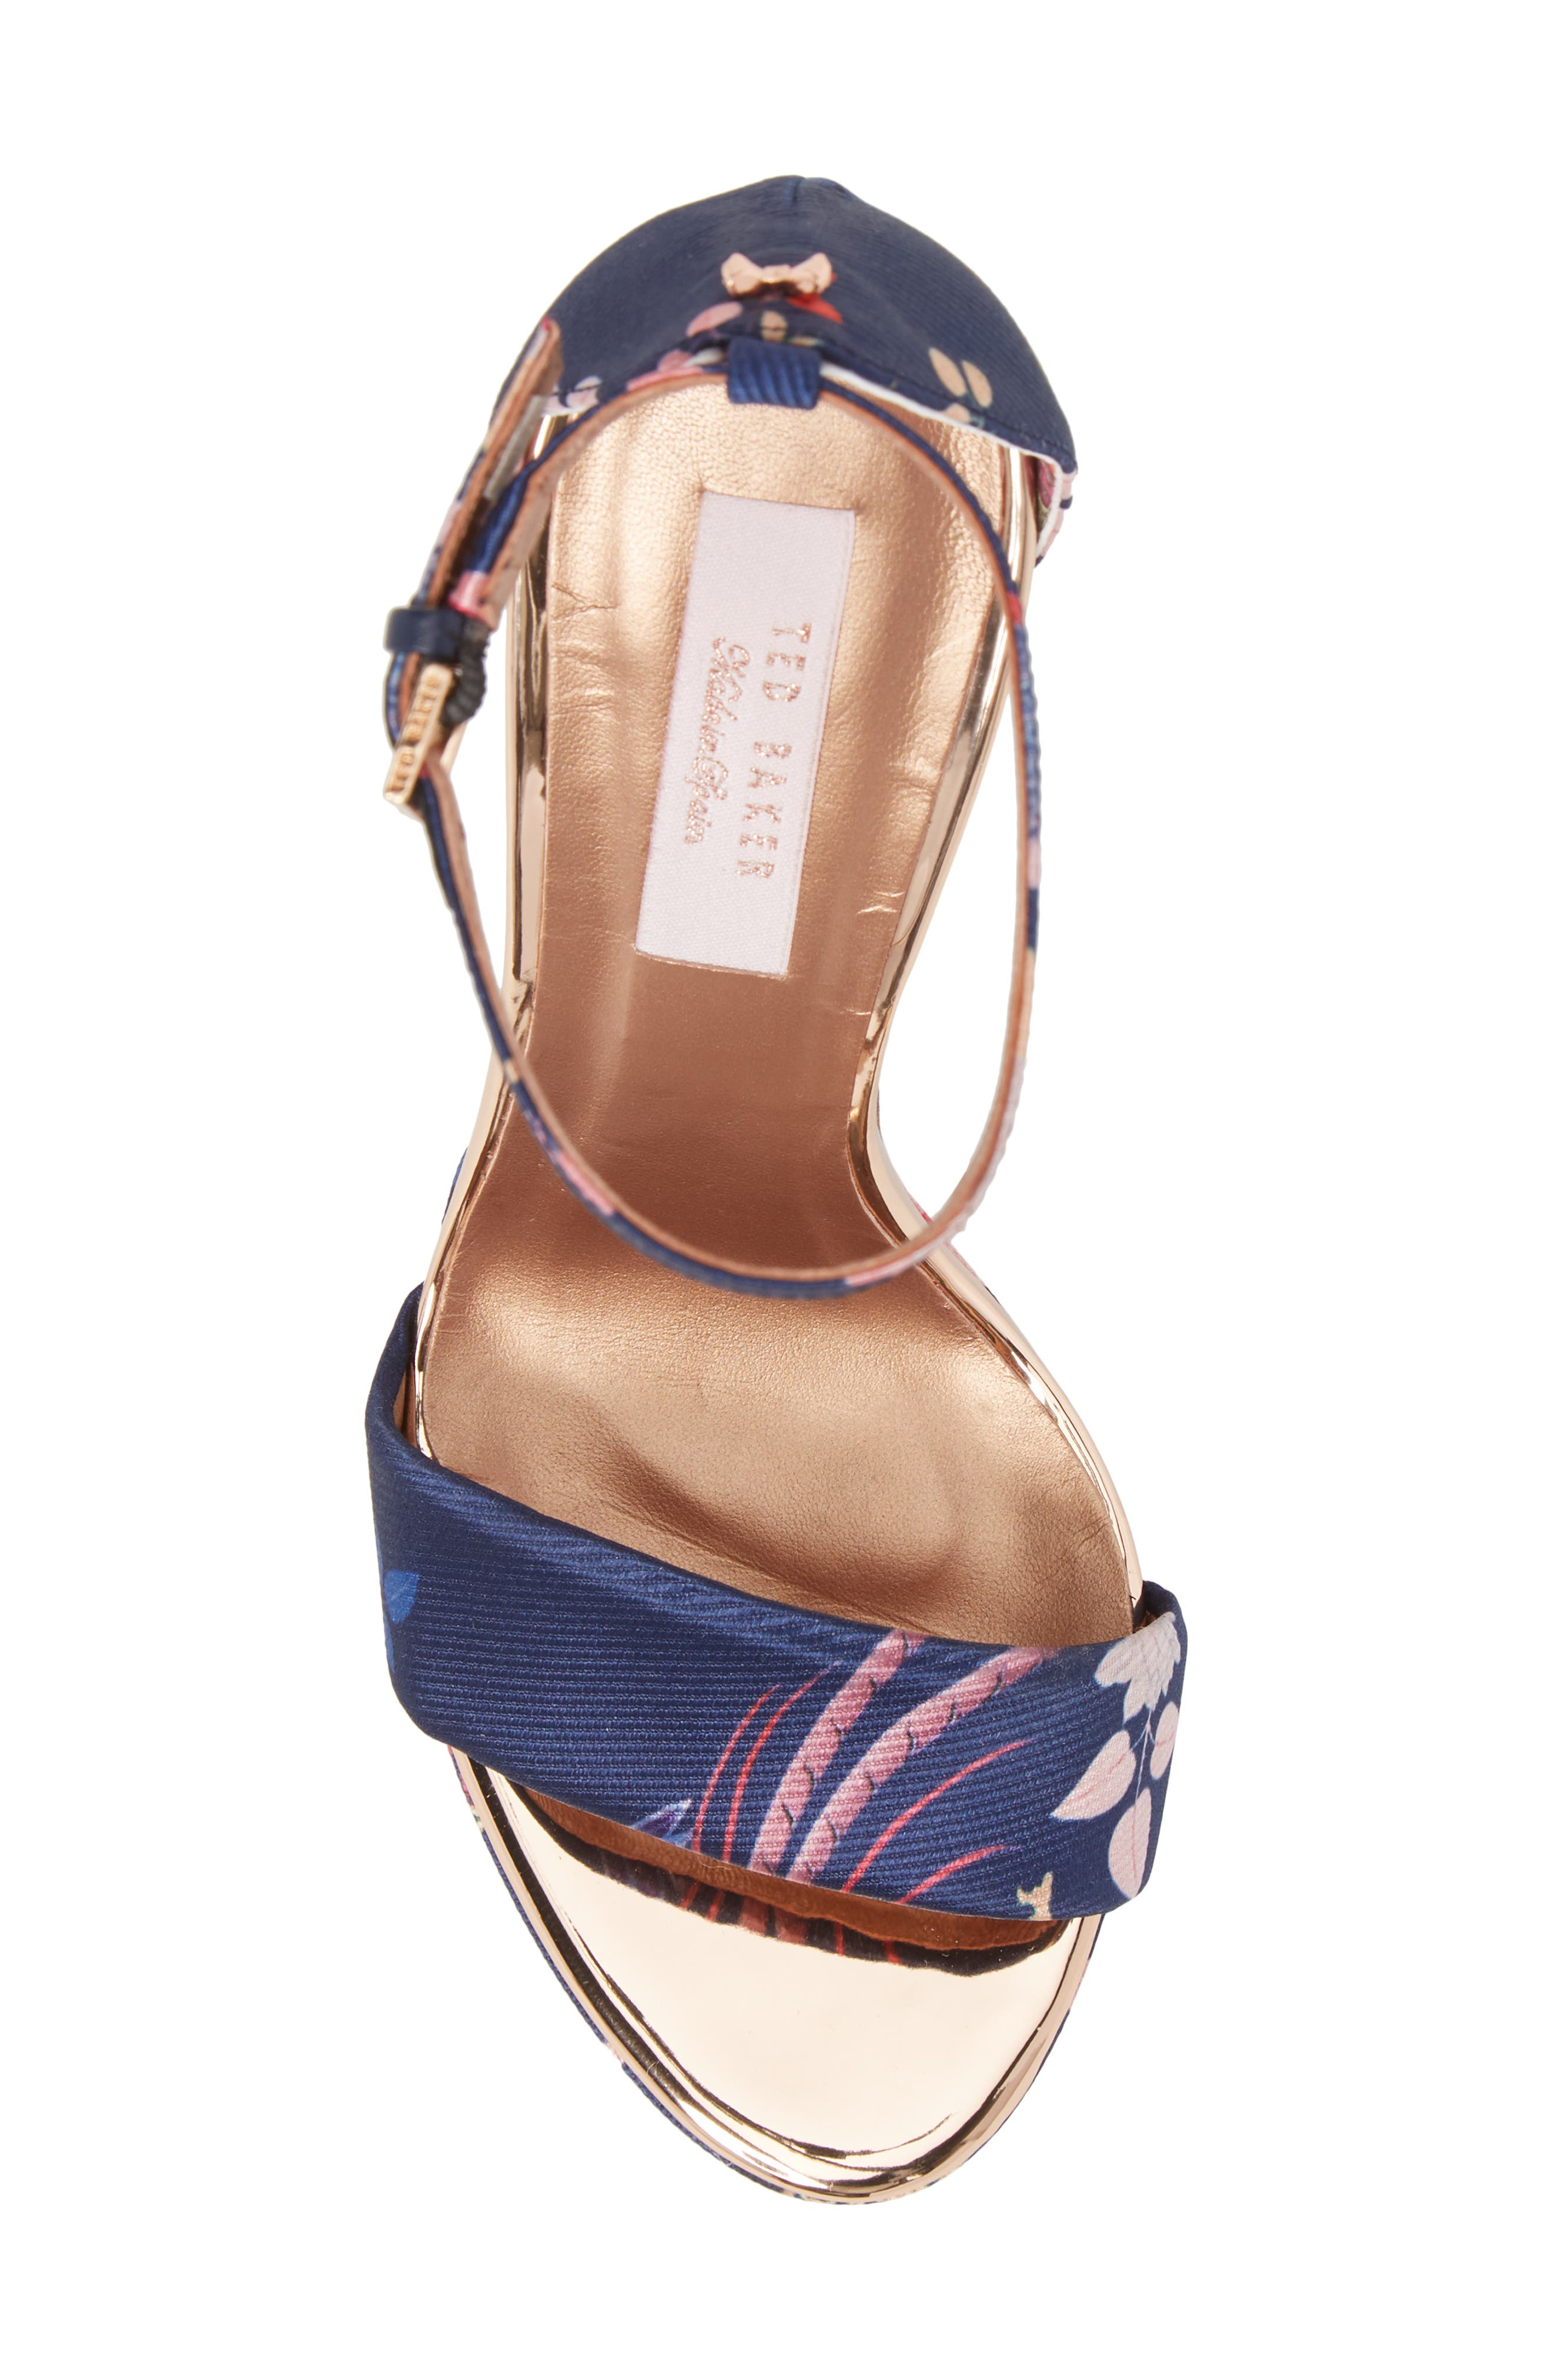 Junaa Sandal,                             Alternate thumbnail 5, color,                             Navy Fabric